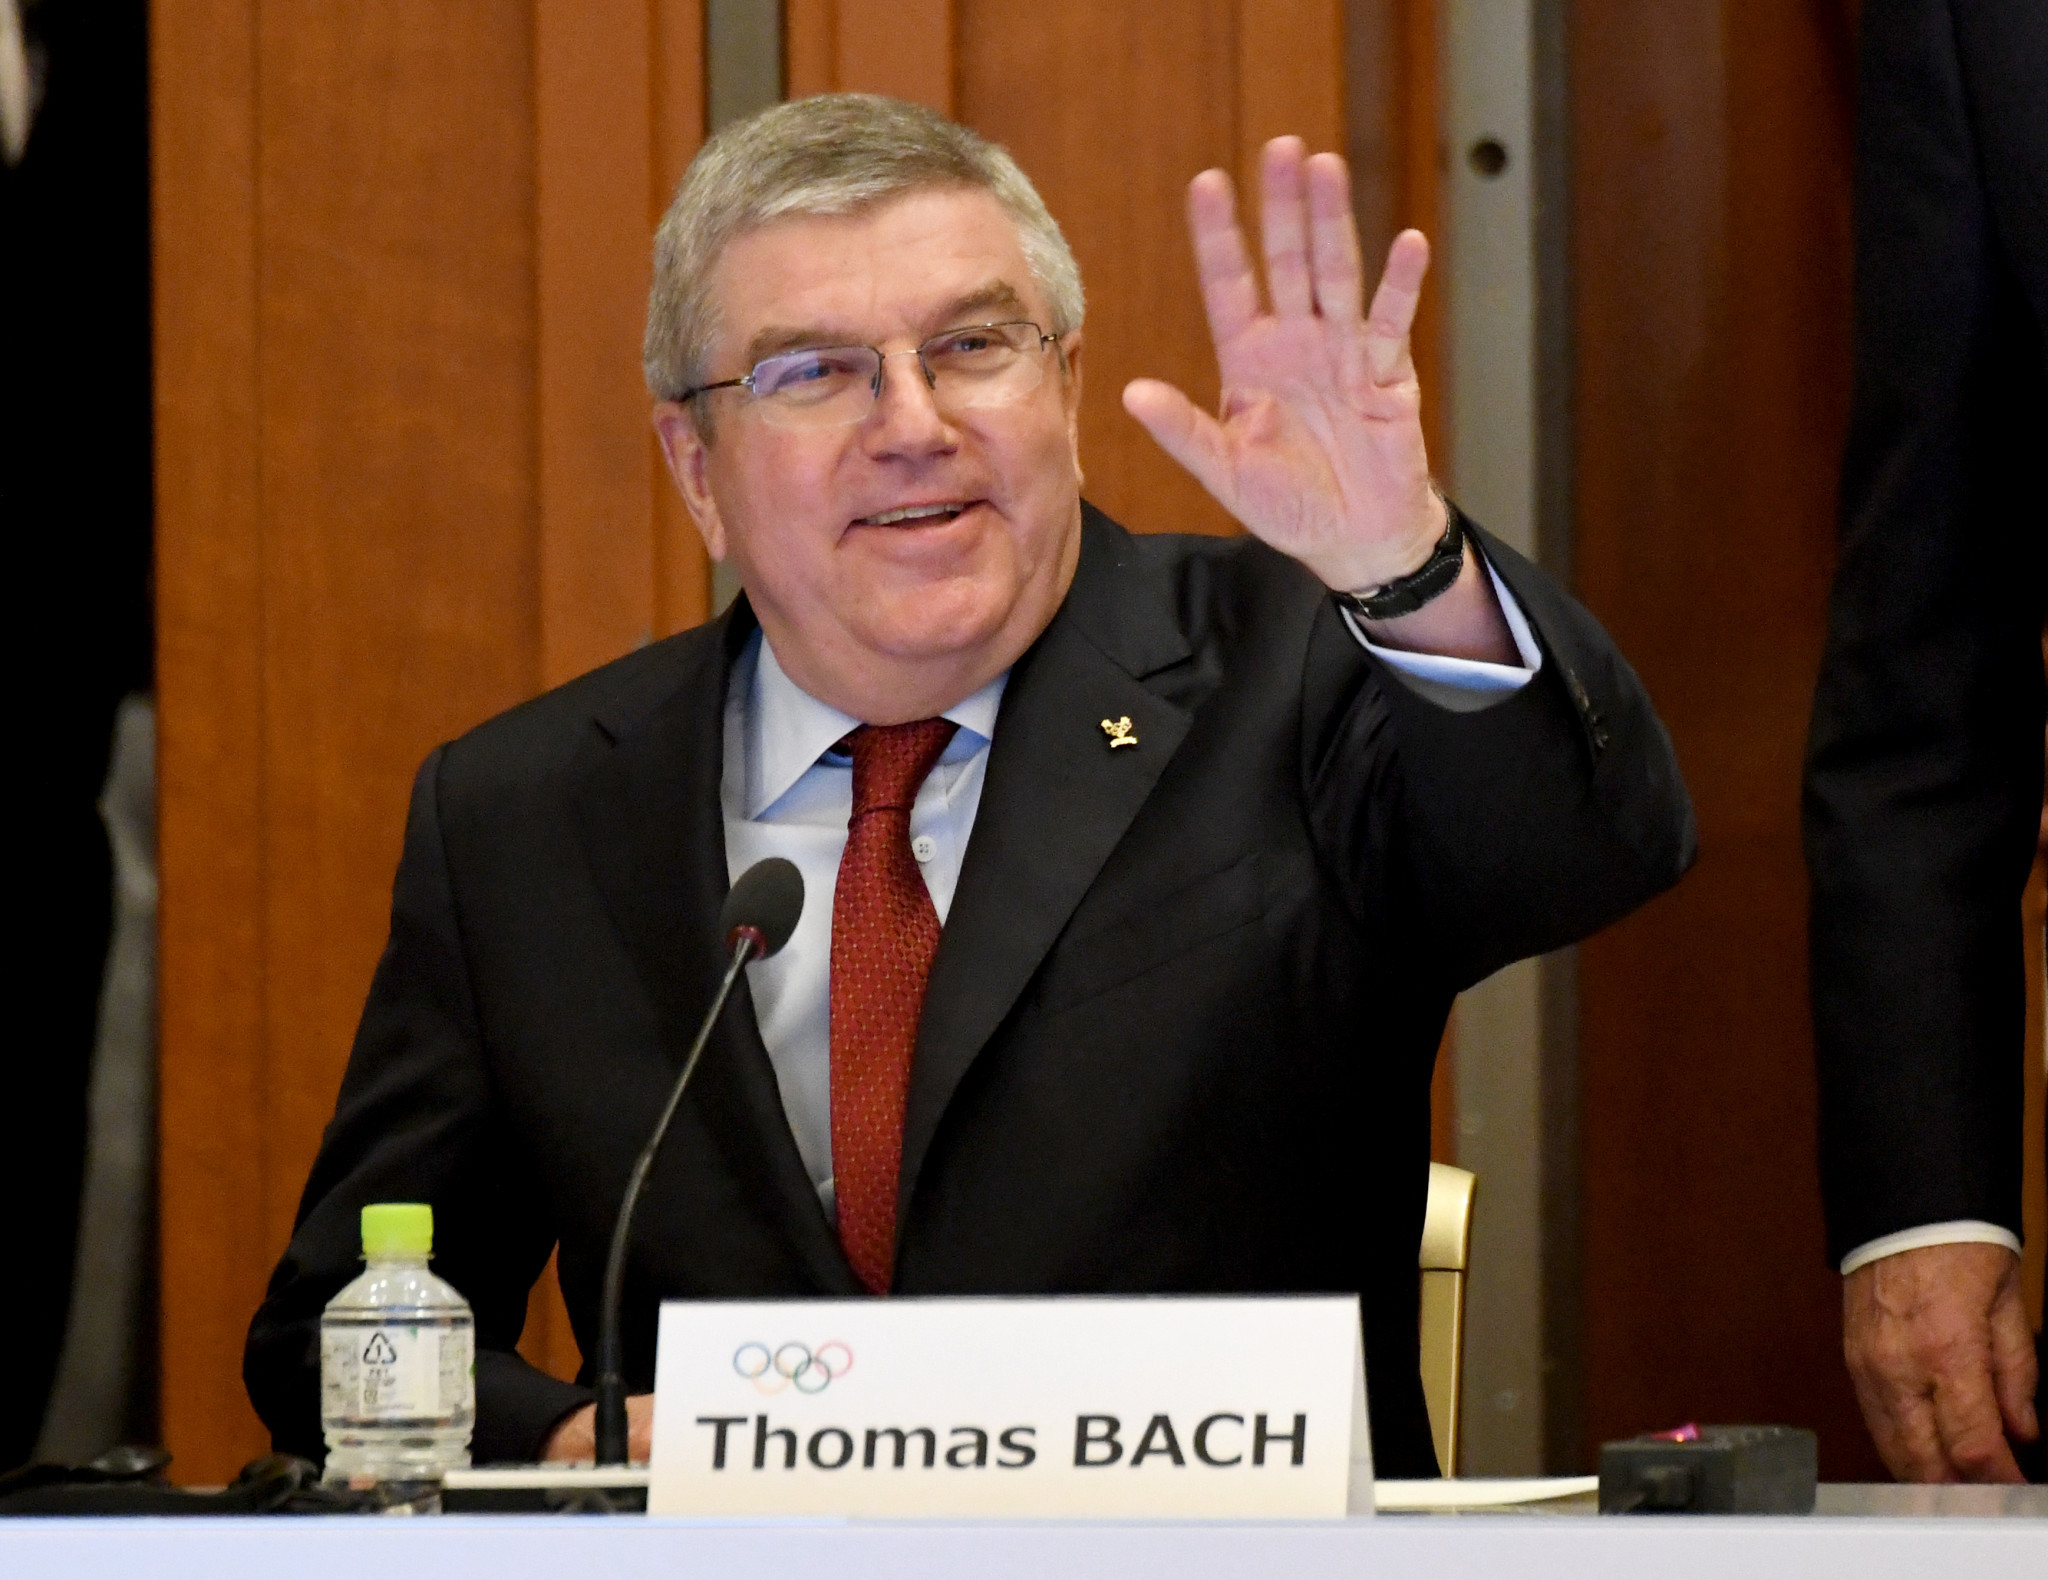 IOC President Thomas Bach claimed all the ingredients were there for Tokyo 2020 to host a successful Games ©Getty Images